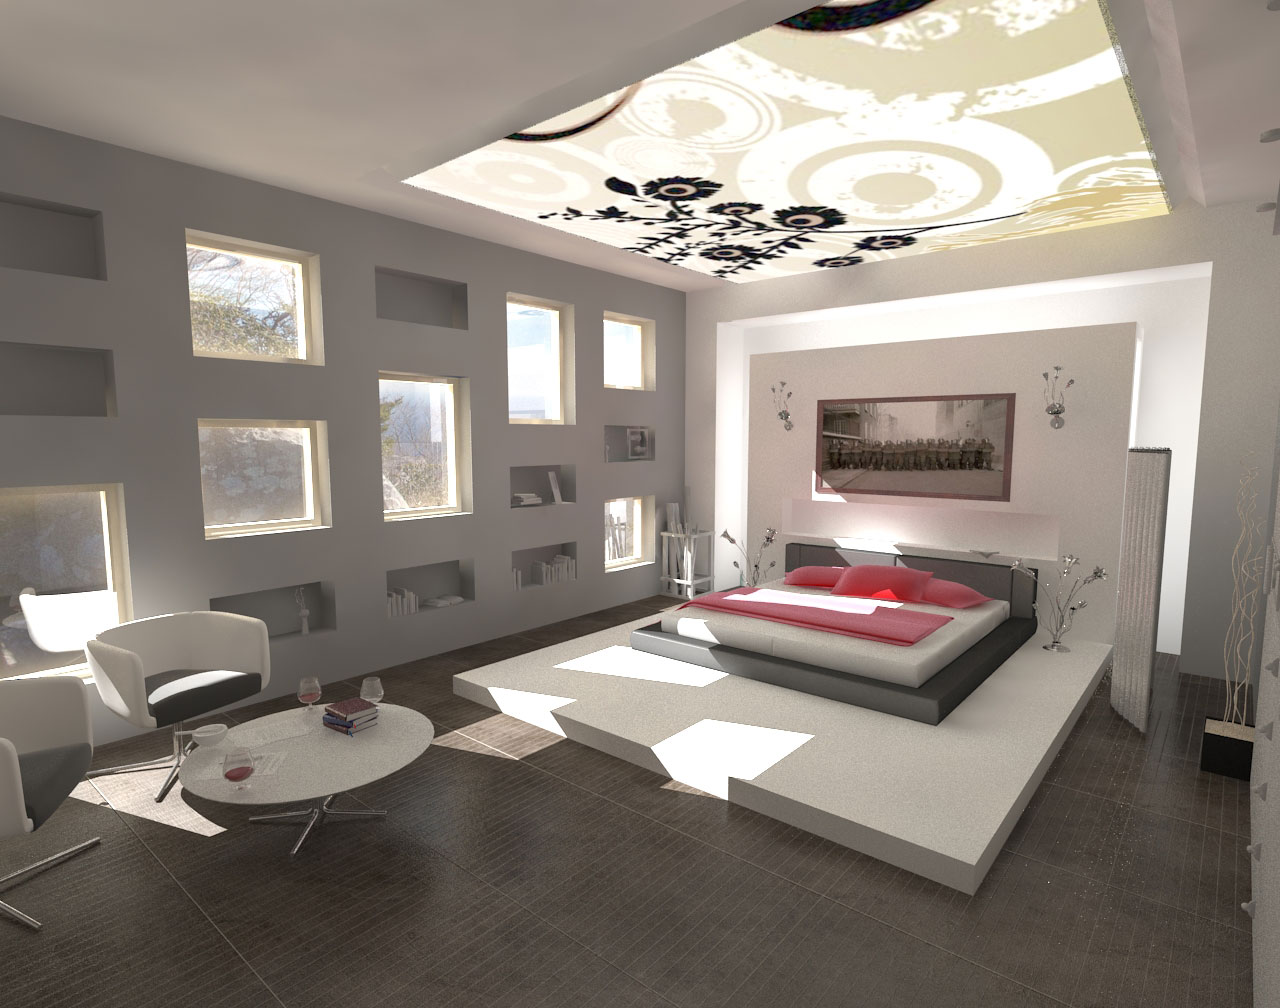 Decorations minimalist design modern bedroom interior for Modern minimalist interior design style